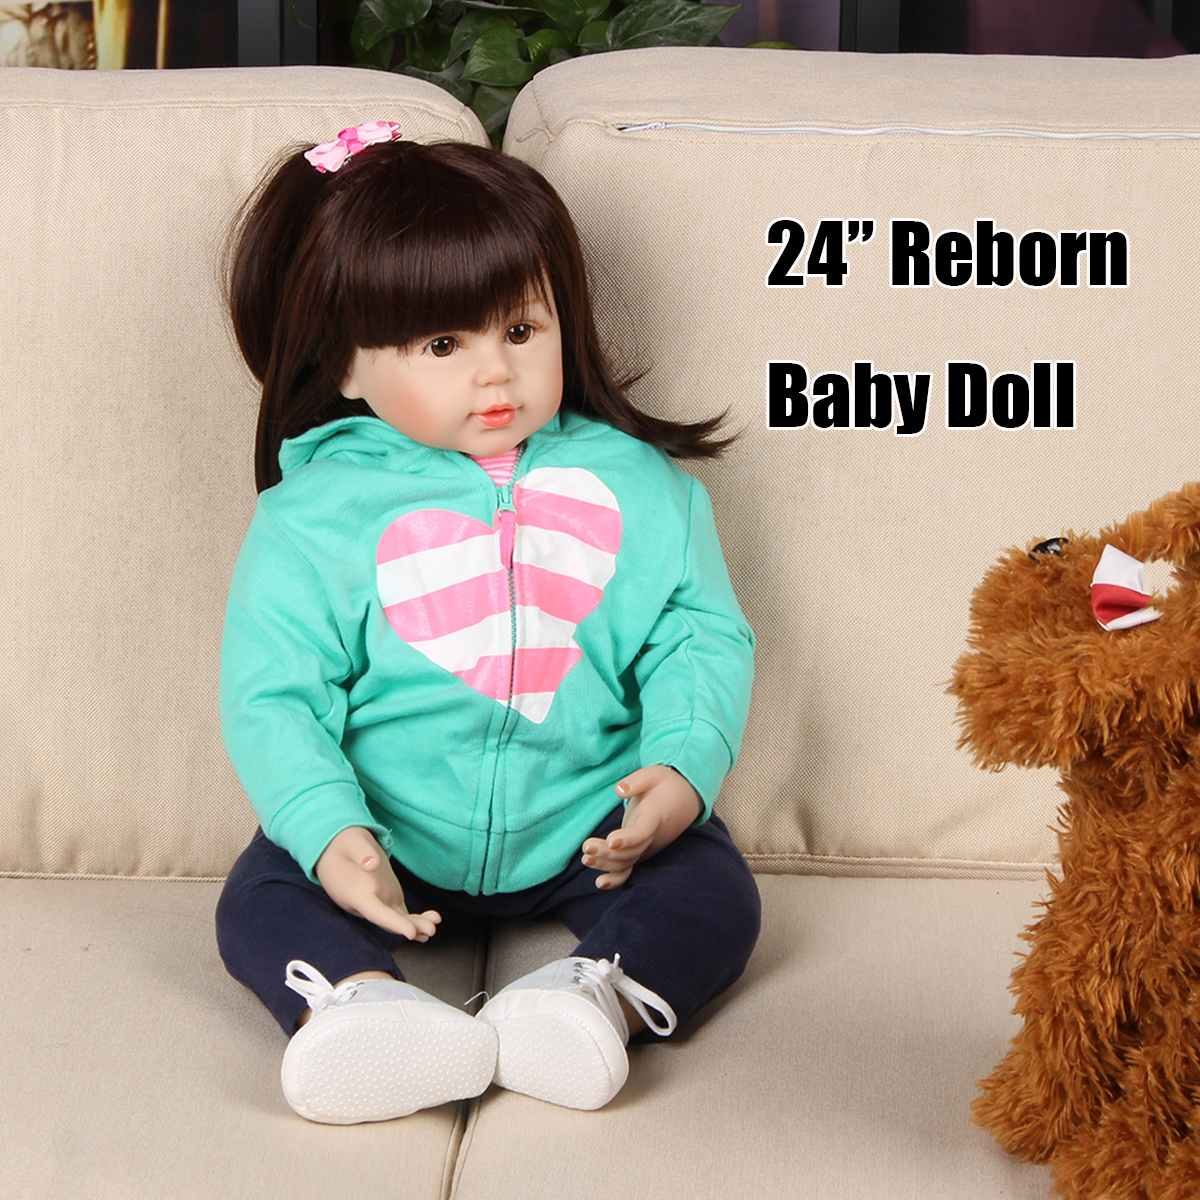 24inch Silicone Reborn Doll Baby Toys Vinyl Princess Toddler Girl Babies Doll For Christmas Gift Birthday Gift Play House Toy24inch Silicone Reborn Doll Baby Toys Vinyl Princess Toddler Girl Babies Doll For Christmas Gift Birthday Gift Play House Toy